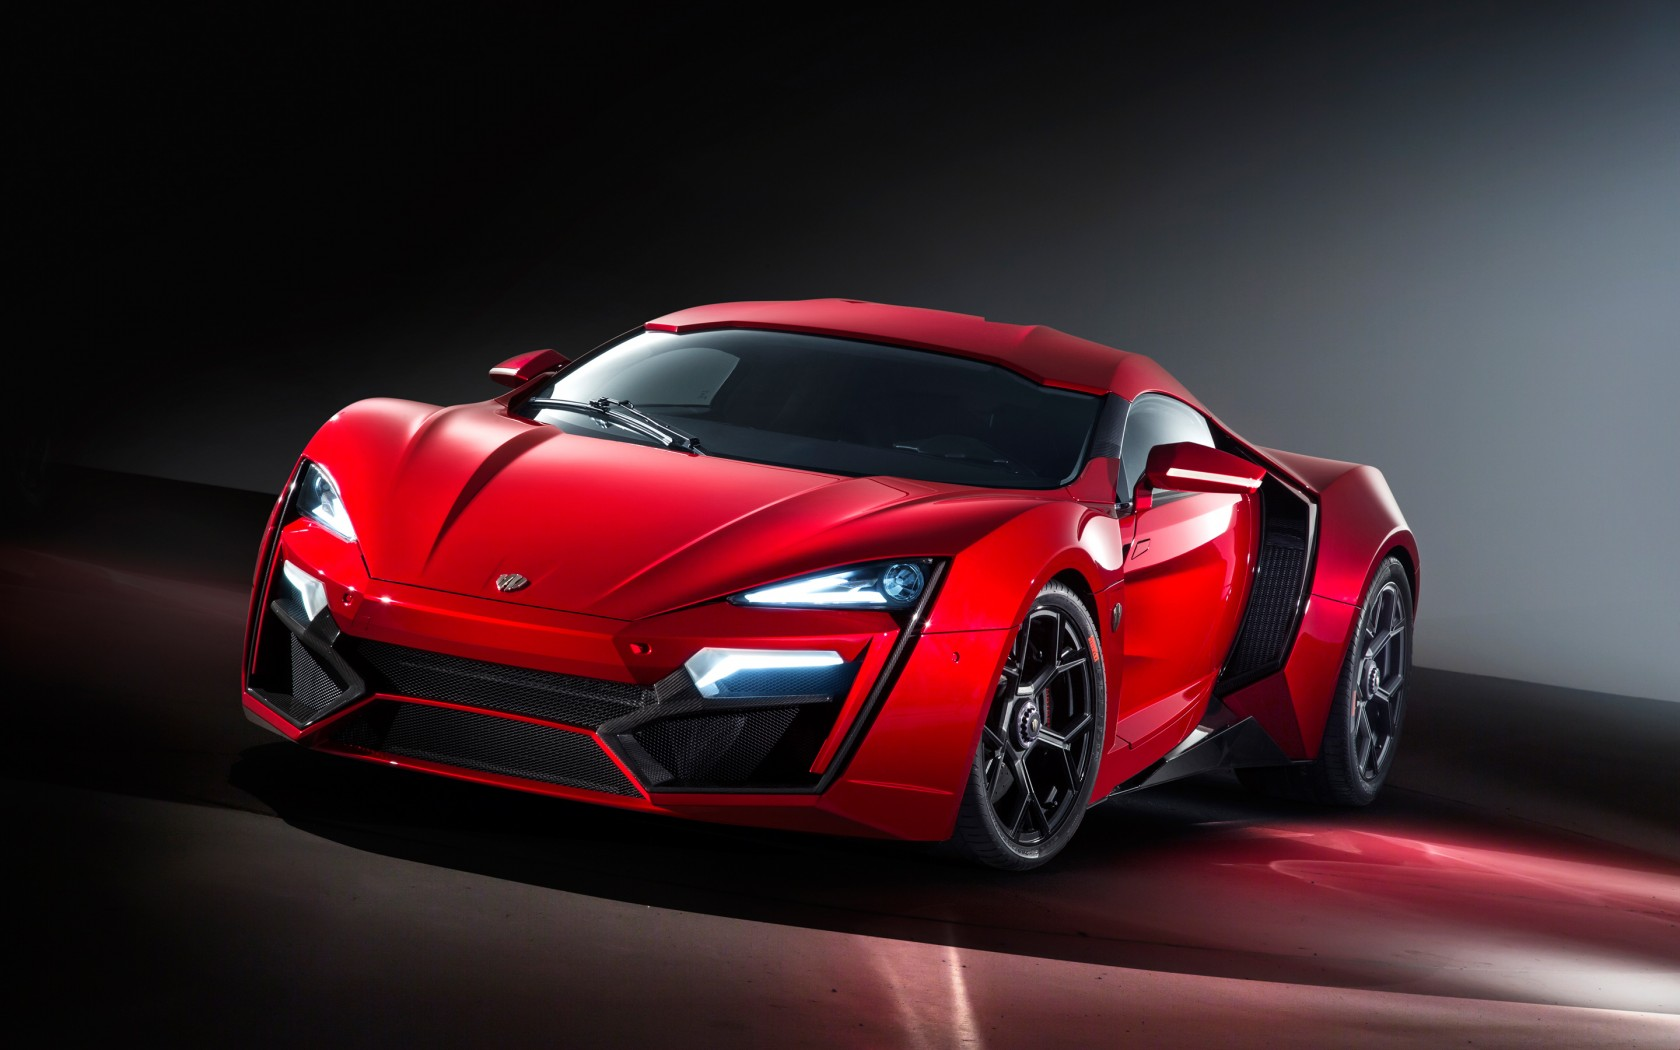 2017 W Motors Lykan Hypersport Wallpaper Hd Car Wallpapers Id 6620